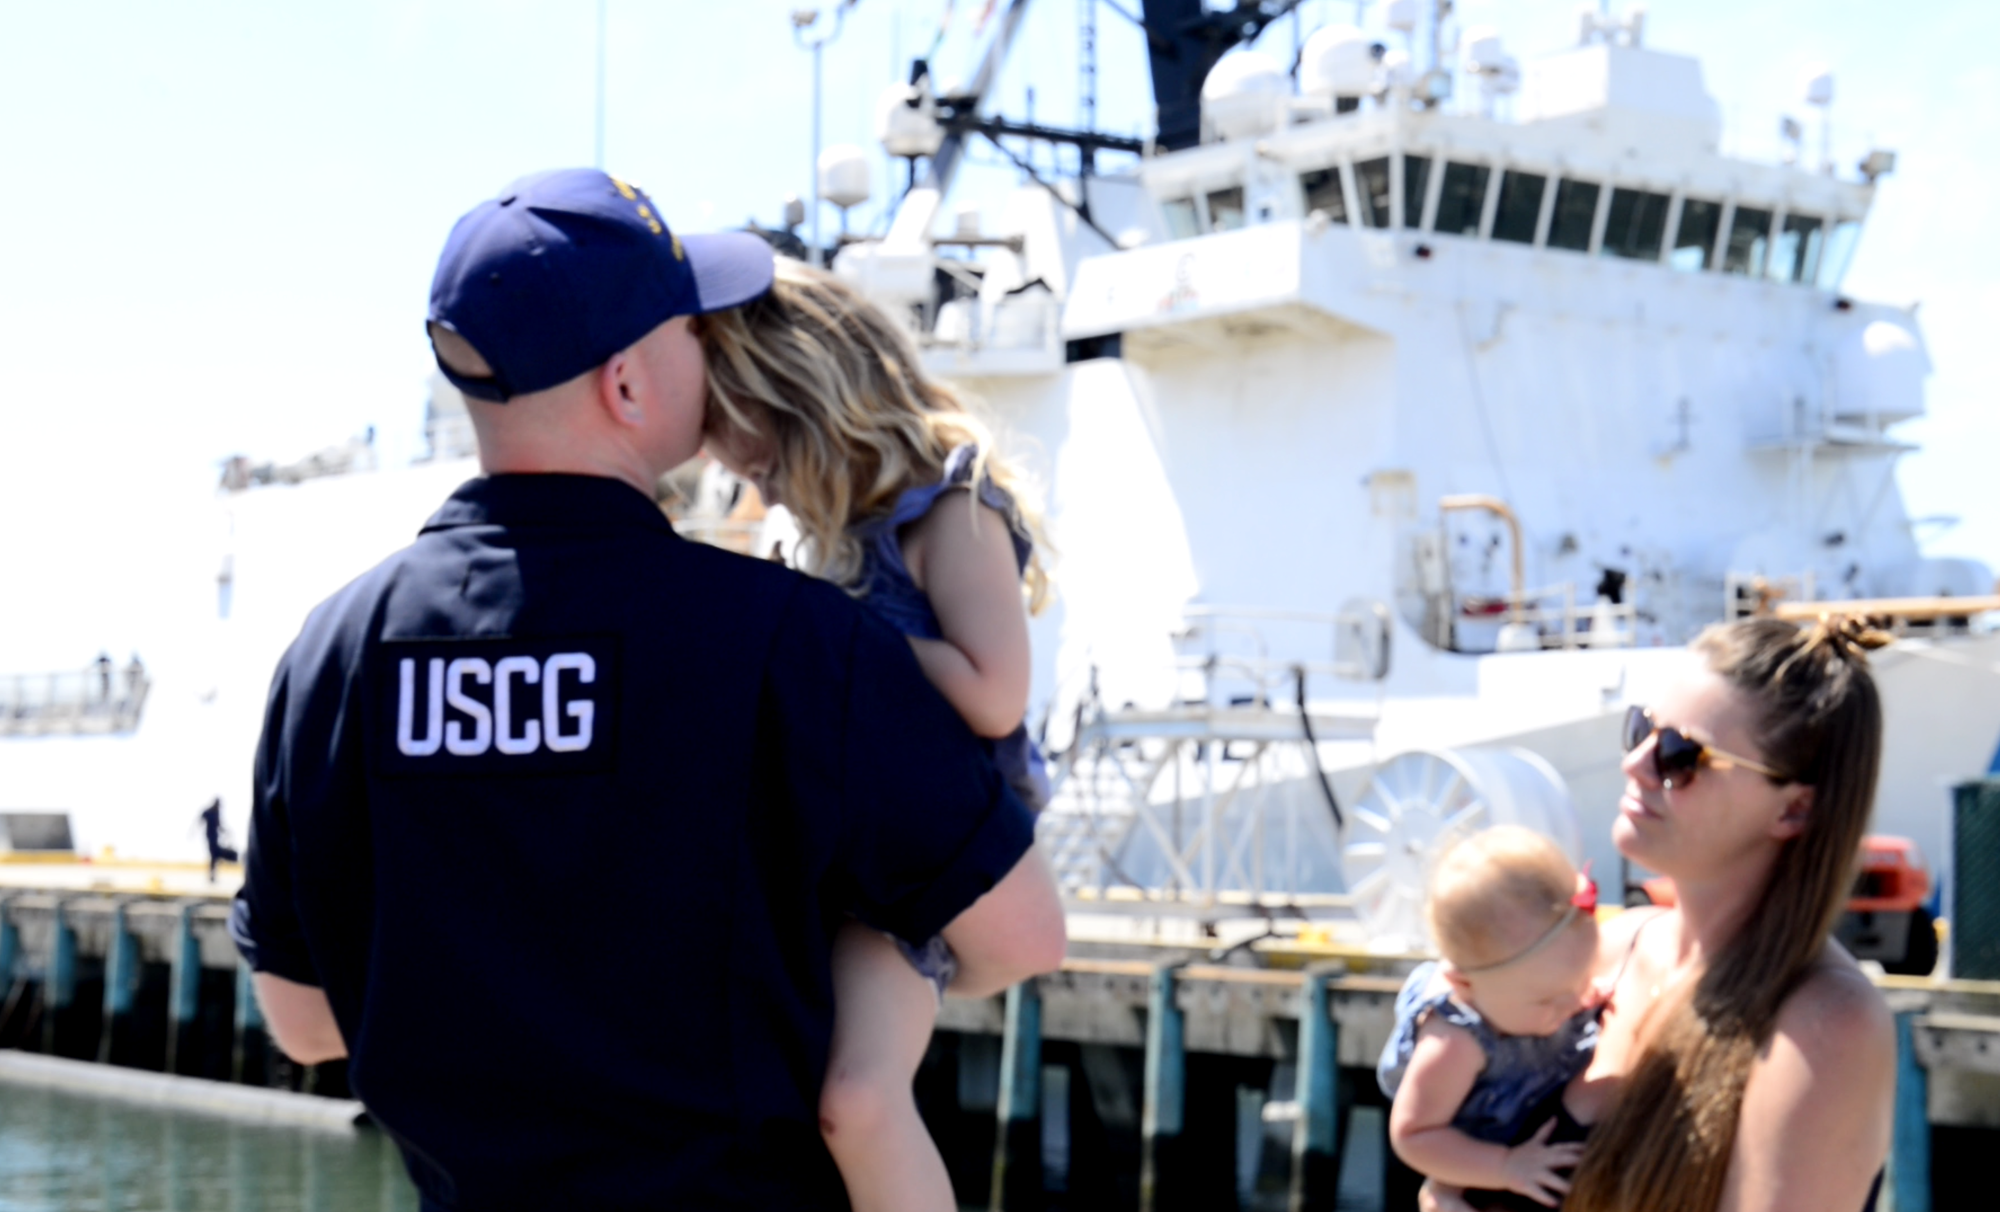 Multimedia Release: Alameda-based Coast Guard cutters depart for Eastern and Western Pacific patrols